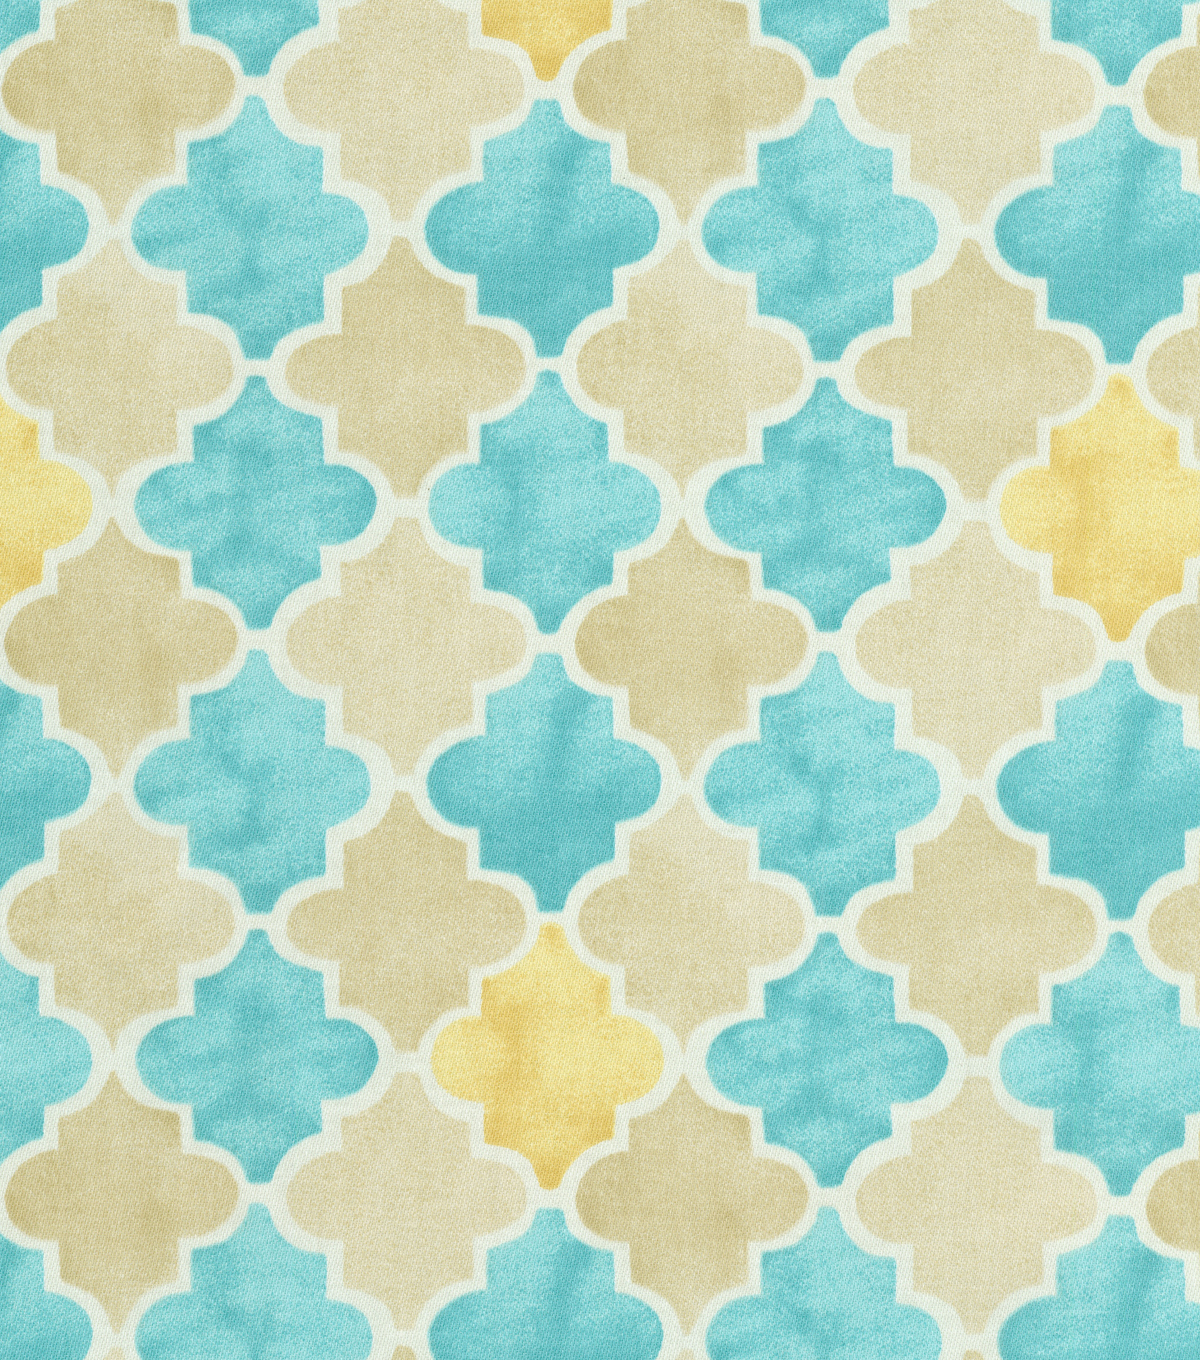 Home Decor 8\u0022x8\u0022 Fabric Swatch-Laurette Design Beach Walk Malibu